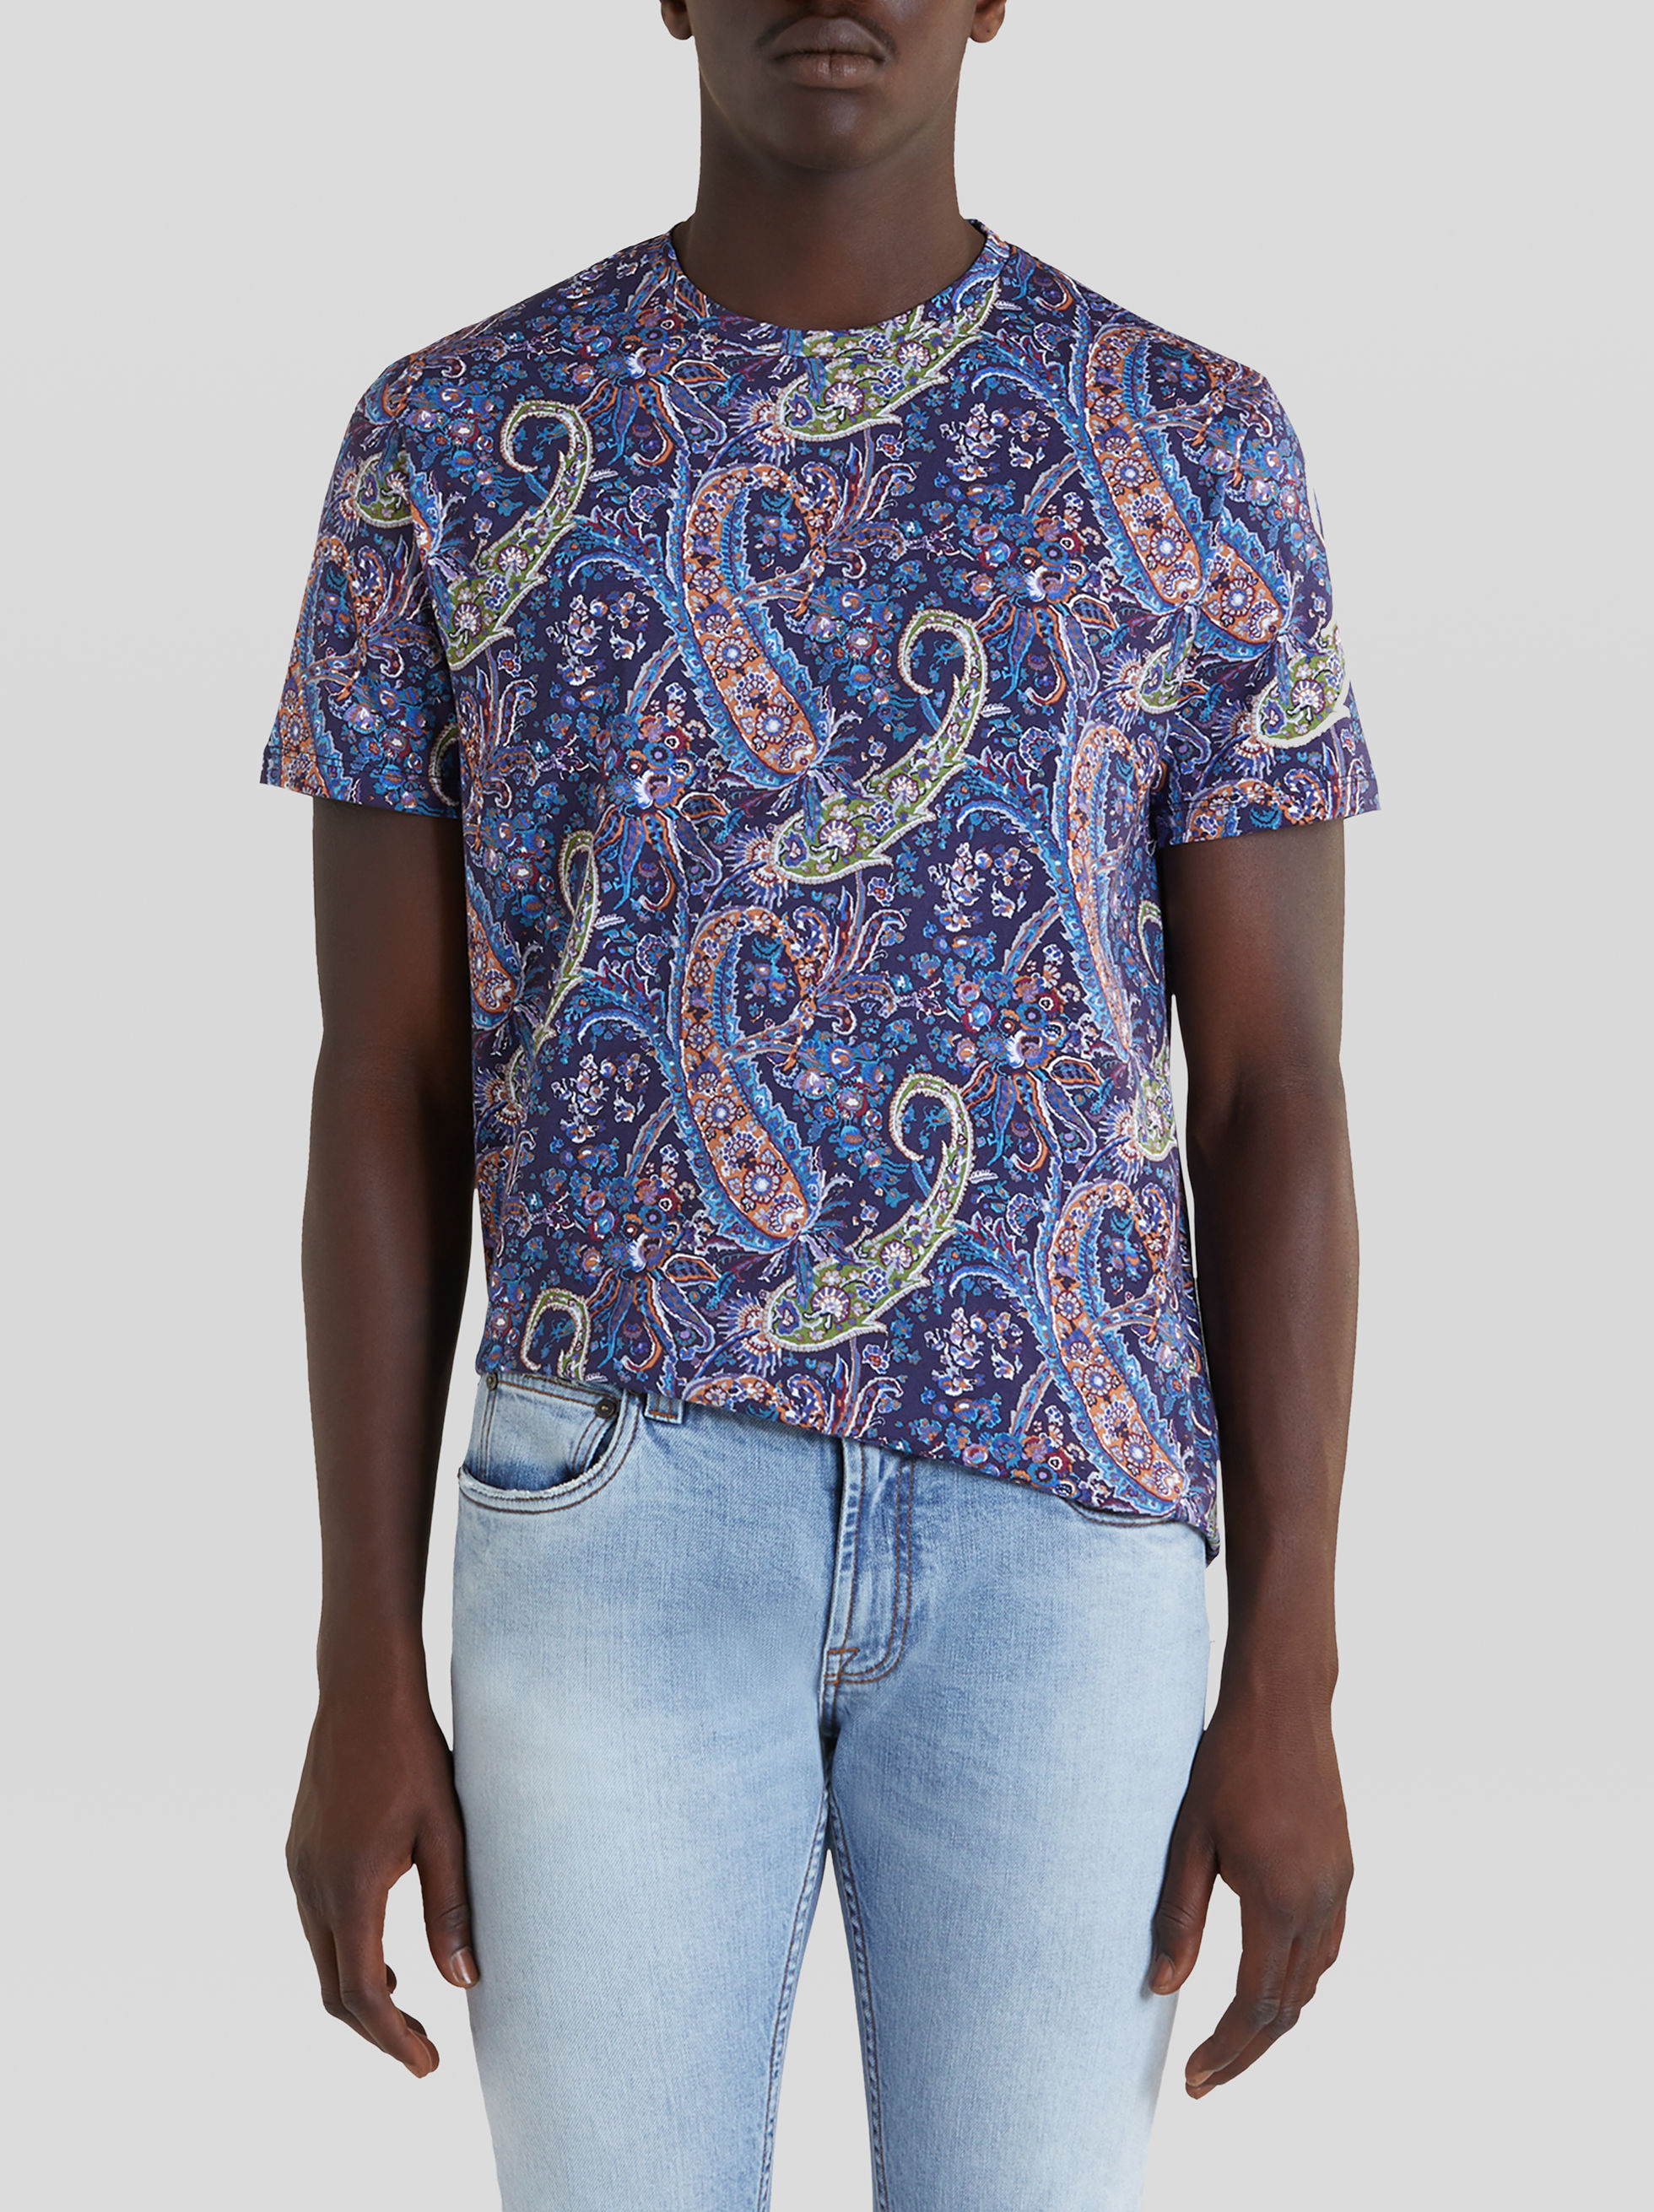 COTTON T-SHIRT WITH FLORAL PAISLEY PRINT